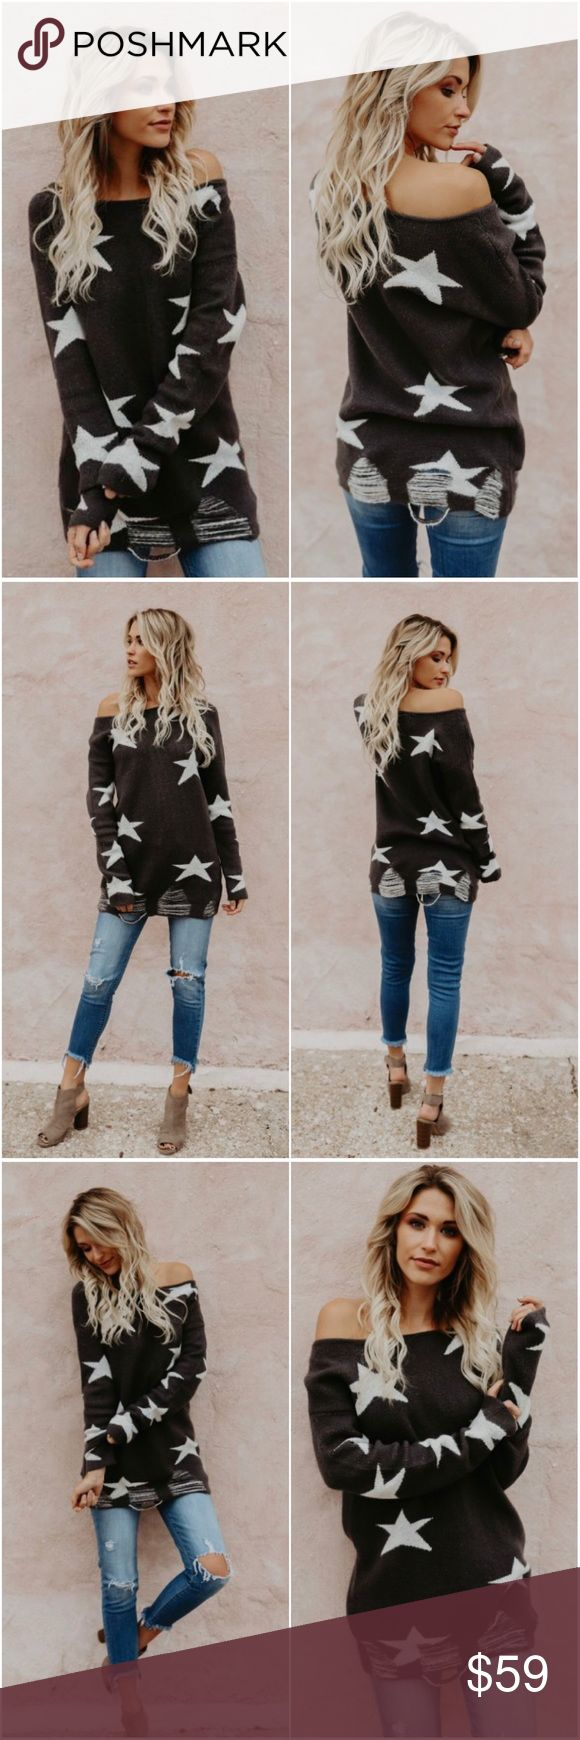 """🆕Ari Distressed Star Sweater in Charcoal The charcoal hue combined with ivory stars throughout this sweater creates a bold contrast that would be perfectly stylish with black skinnies and black booties for a little edge!  Distressed Hemline Unlined  Size Small: 31"""" from shoulder to hem (S M L available) 65% Acrylic, 25% Nylon and 10% Polyester Model is 5'7"""" and wears a Small A Mermaid's Epiphany Sweaters"""